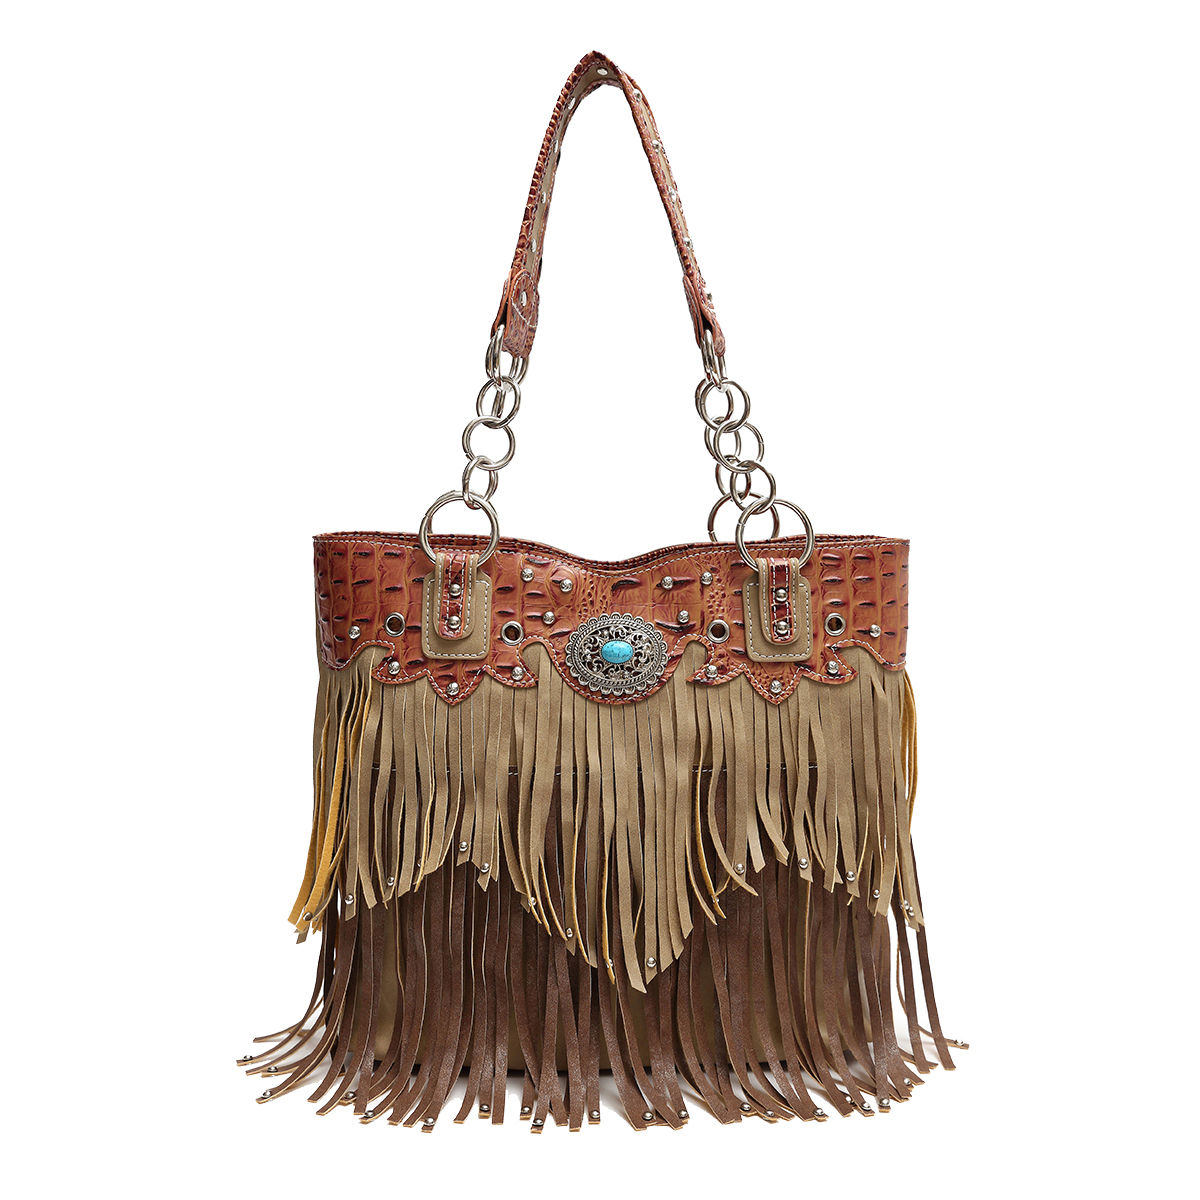 'Cowgirl Trendy' Fringe Bucket Bag Tan